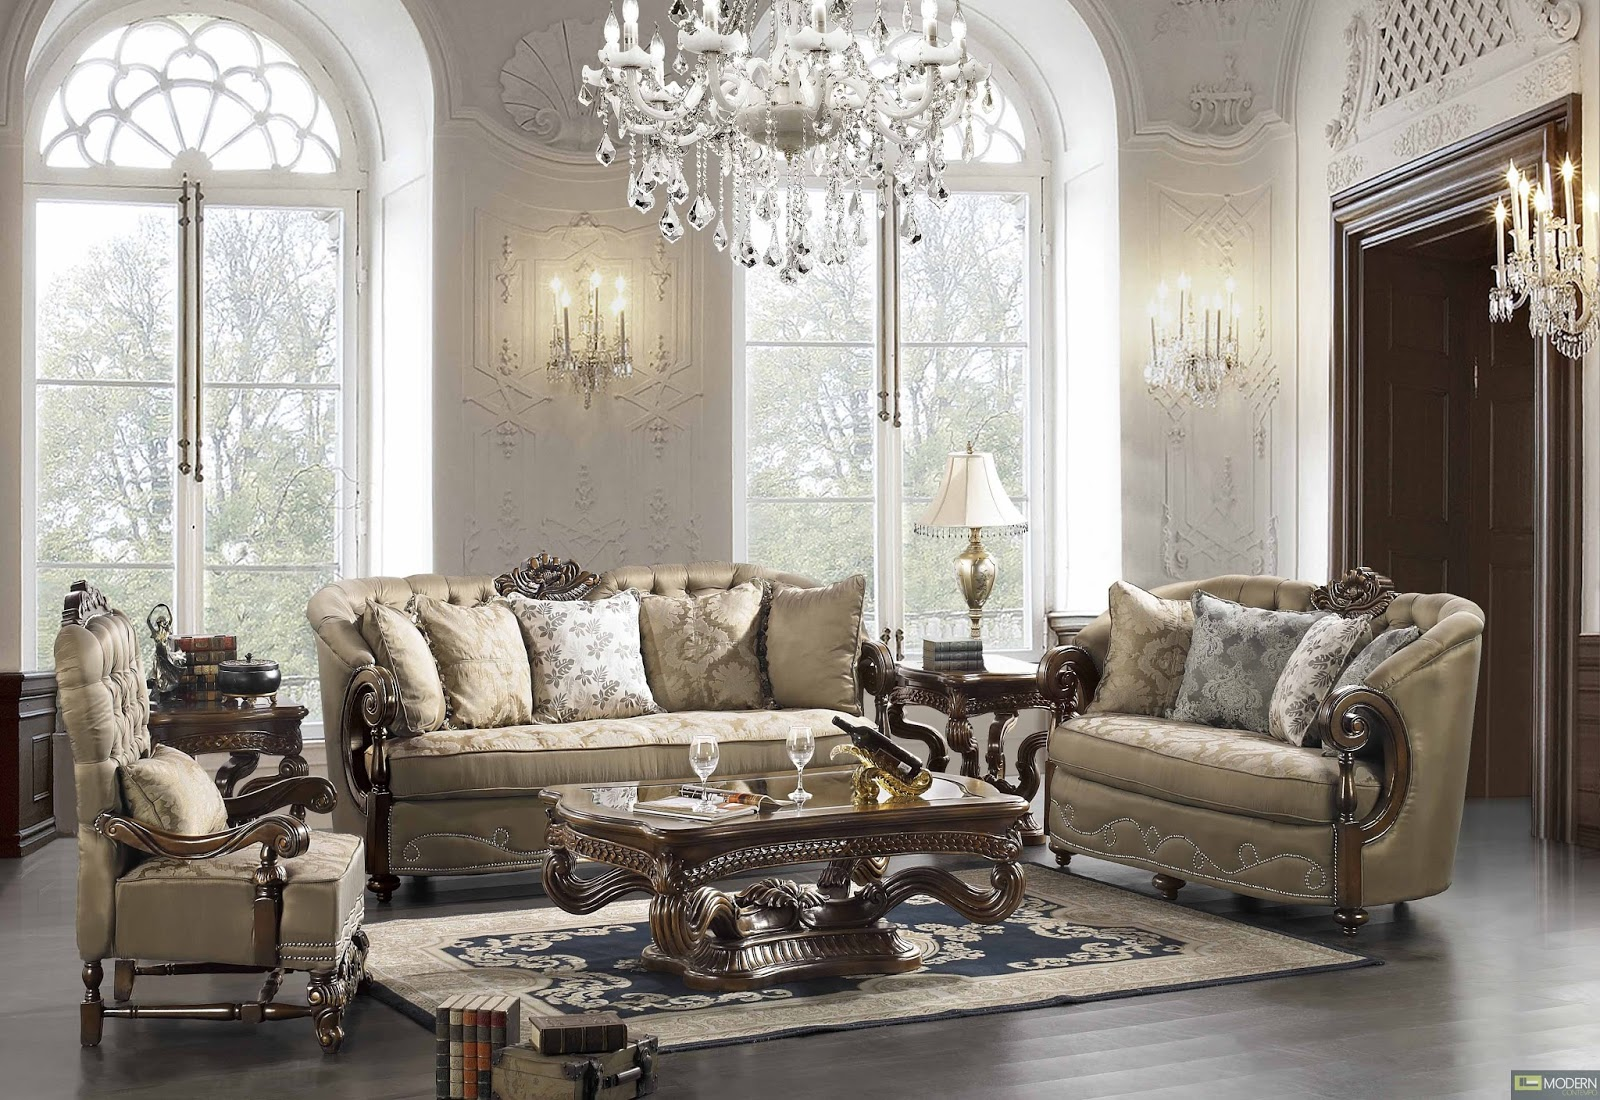 Best furniture ideas for home traditional classic for Beautiful chairs for living room